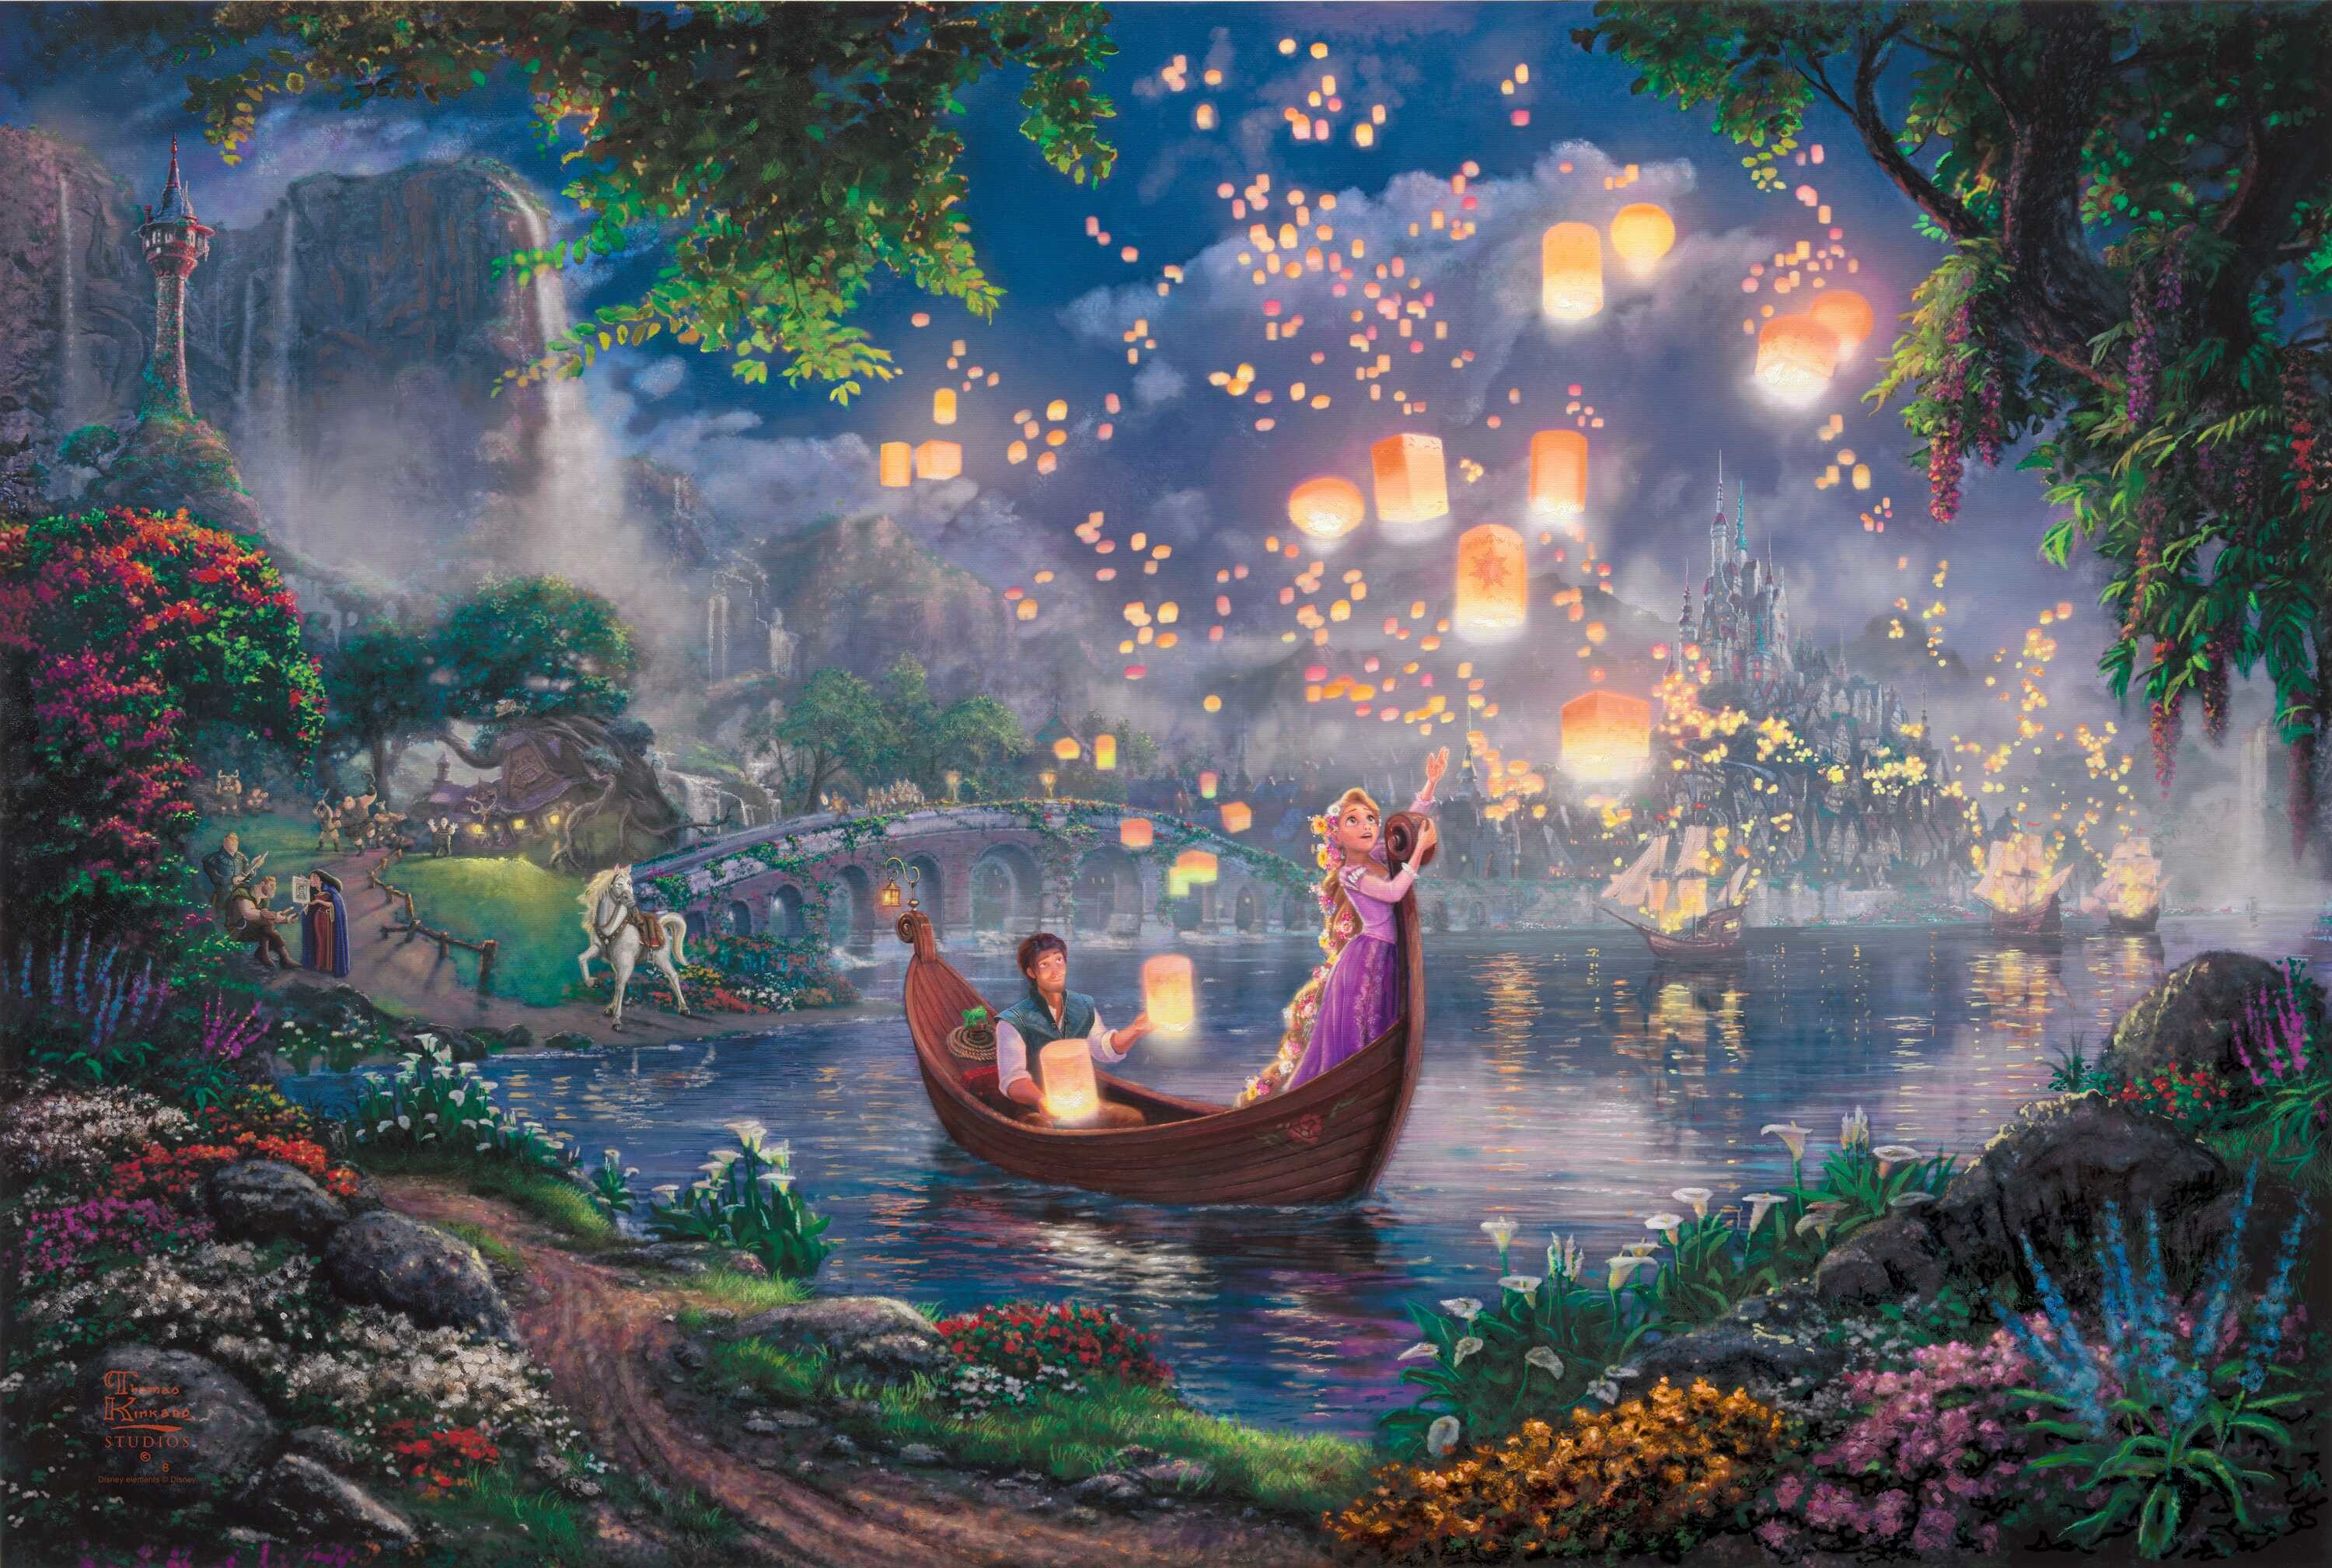 Wallpapers For > Thomas Kinkade Disney Wallpaper